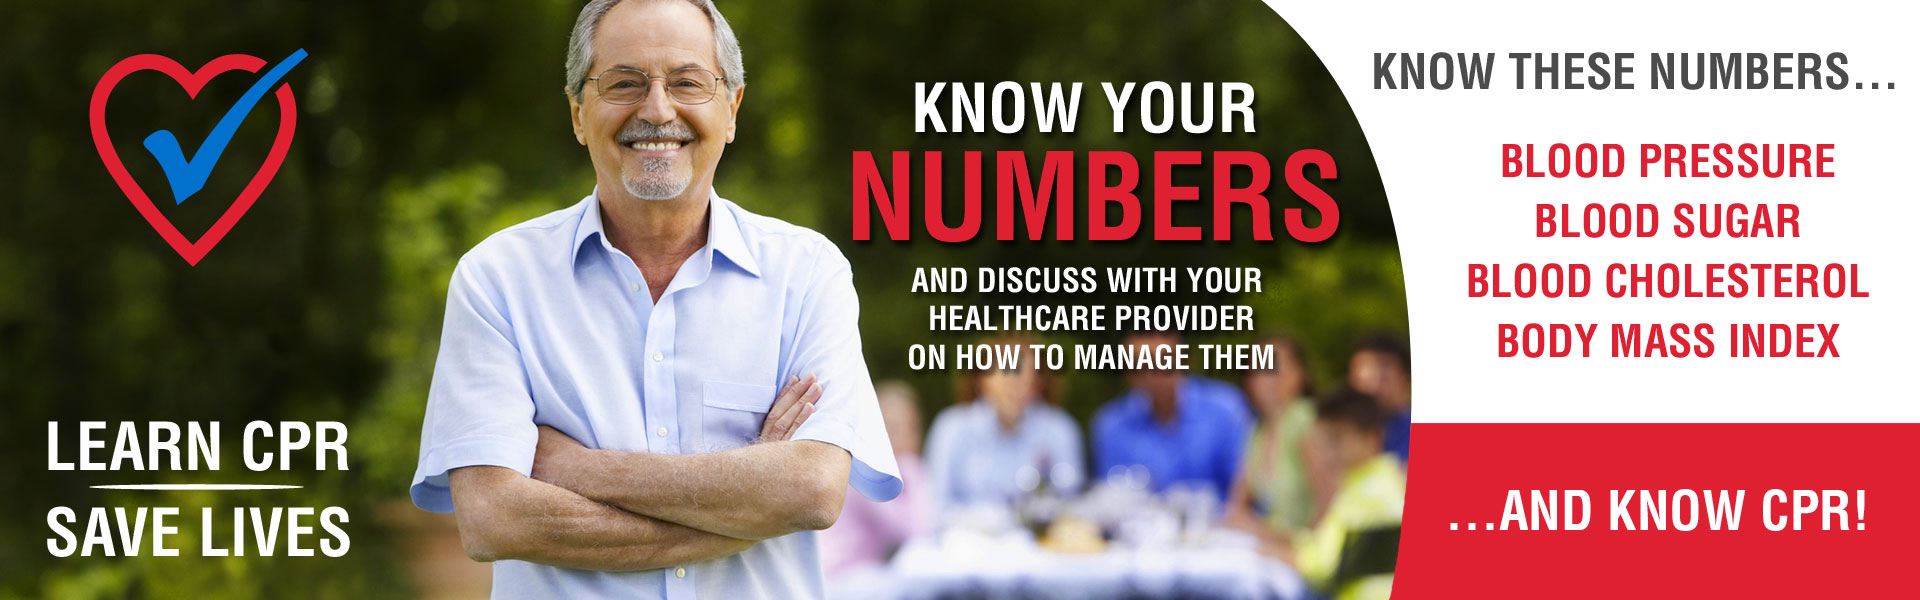 know-your-numbers-1